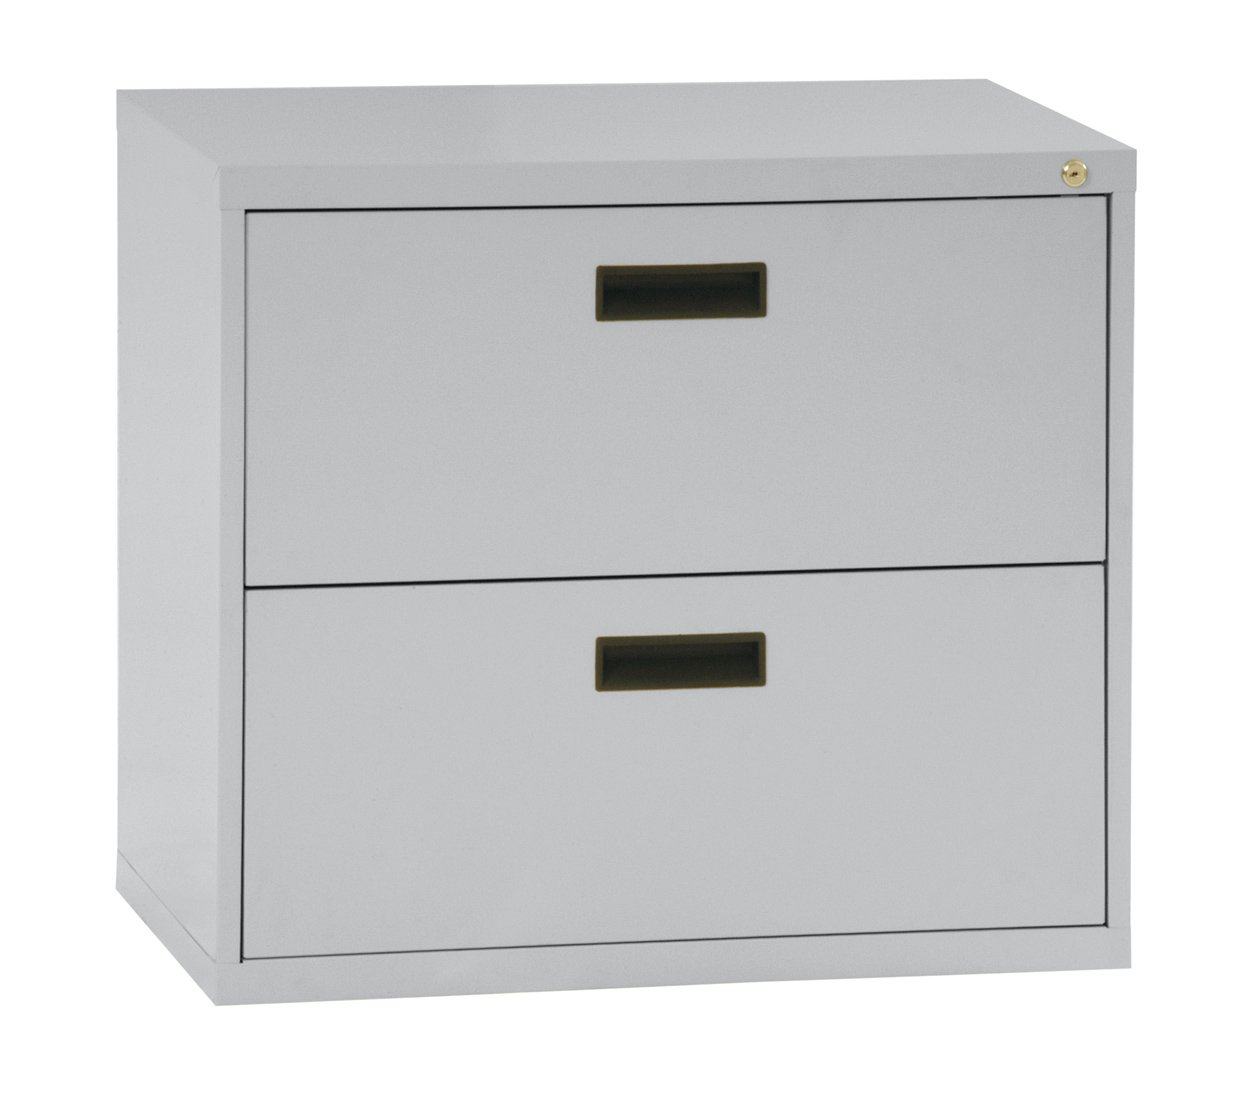 Sandusky 400 Series Dove Gray Steel Lateral File Cabinet with Plastic Handle, 30'' Width x 27-1/4'' Height x 18'' Depth, 2 Drawers